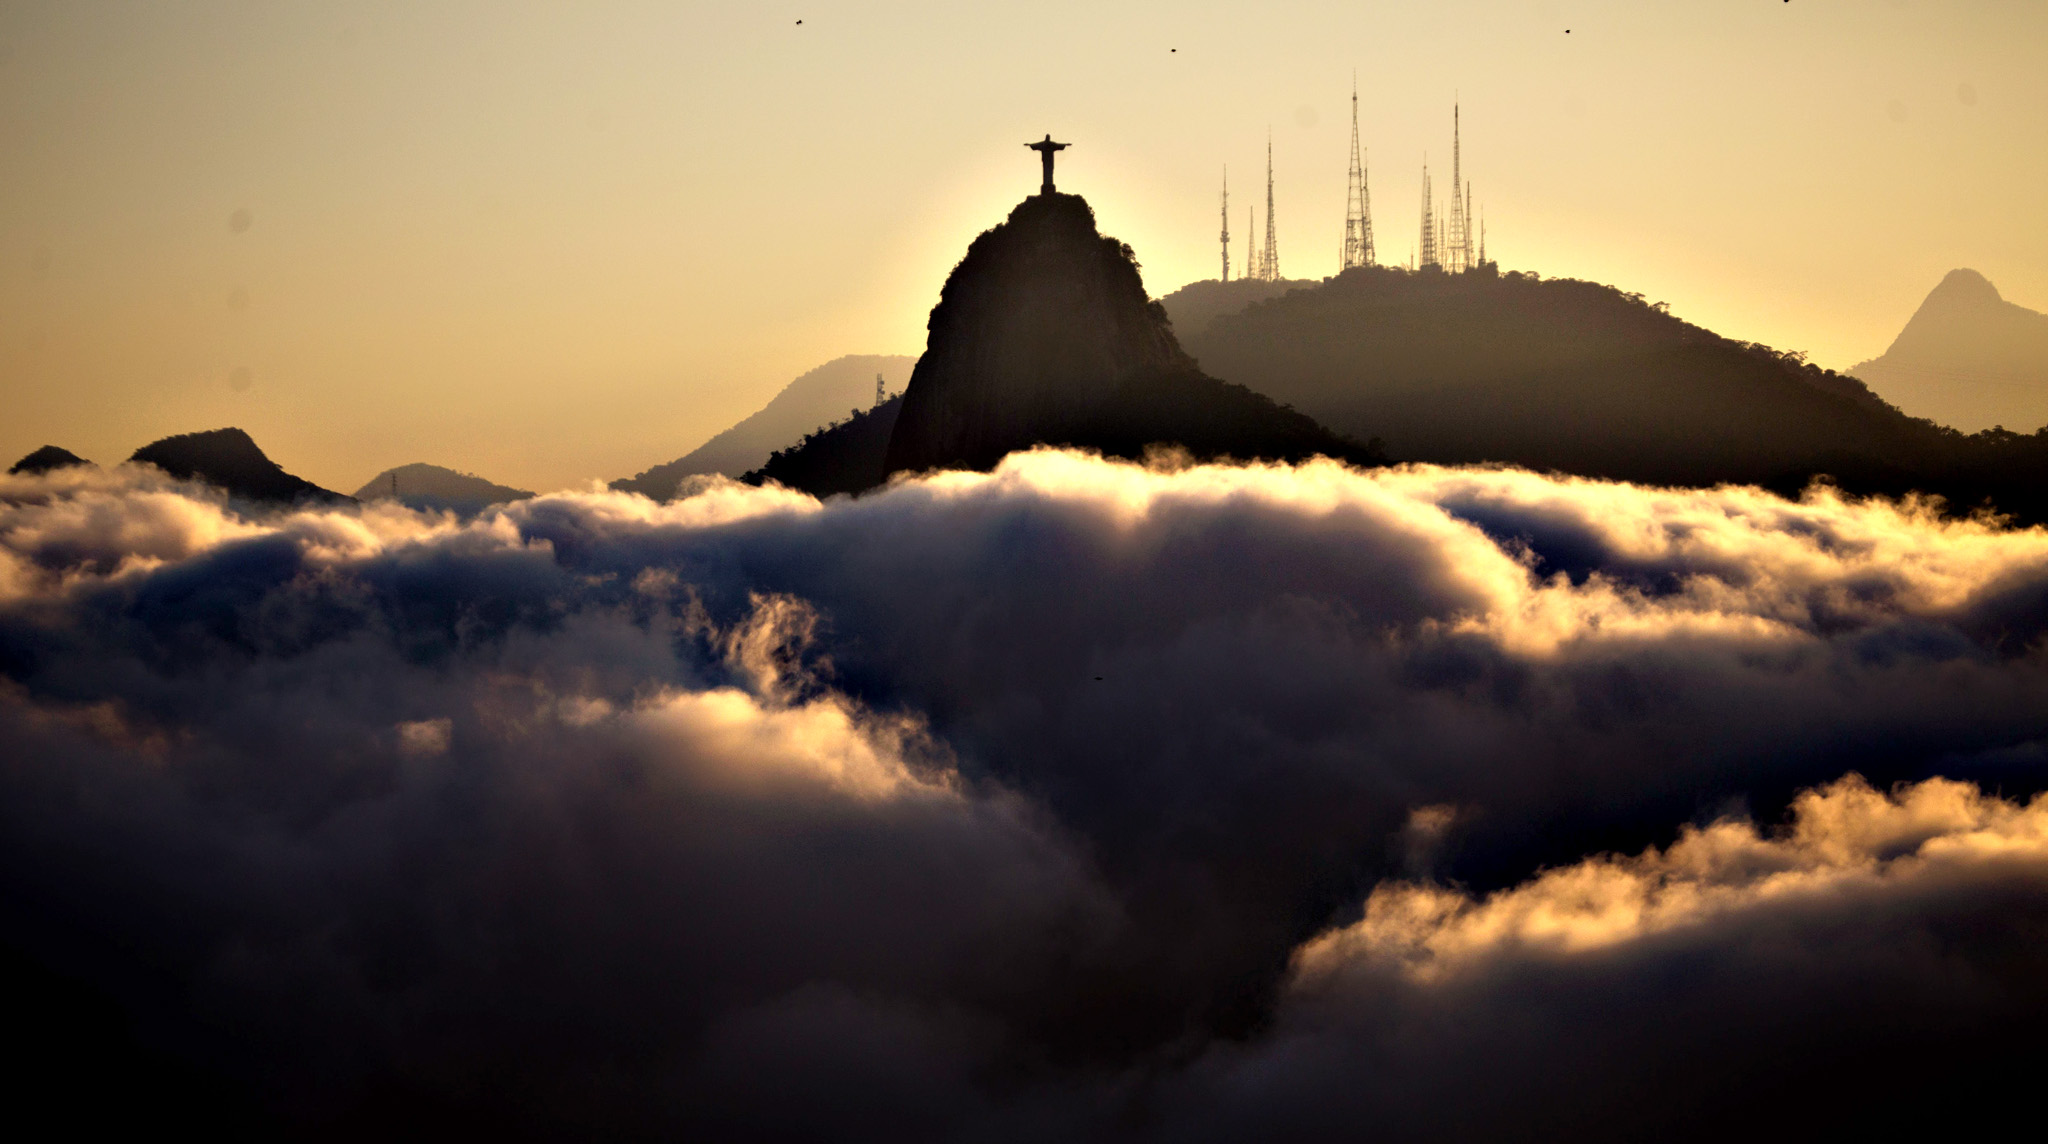 A general view of the Christ the Redeemer on Tuesday. Wednesday, marks one year to go from the start of the 2016 Olympic games which will be held in Rio de Janeiro, Brazil